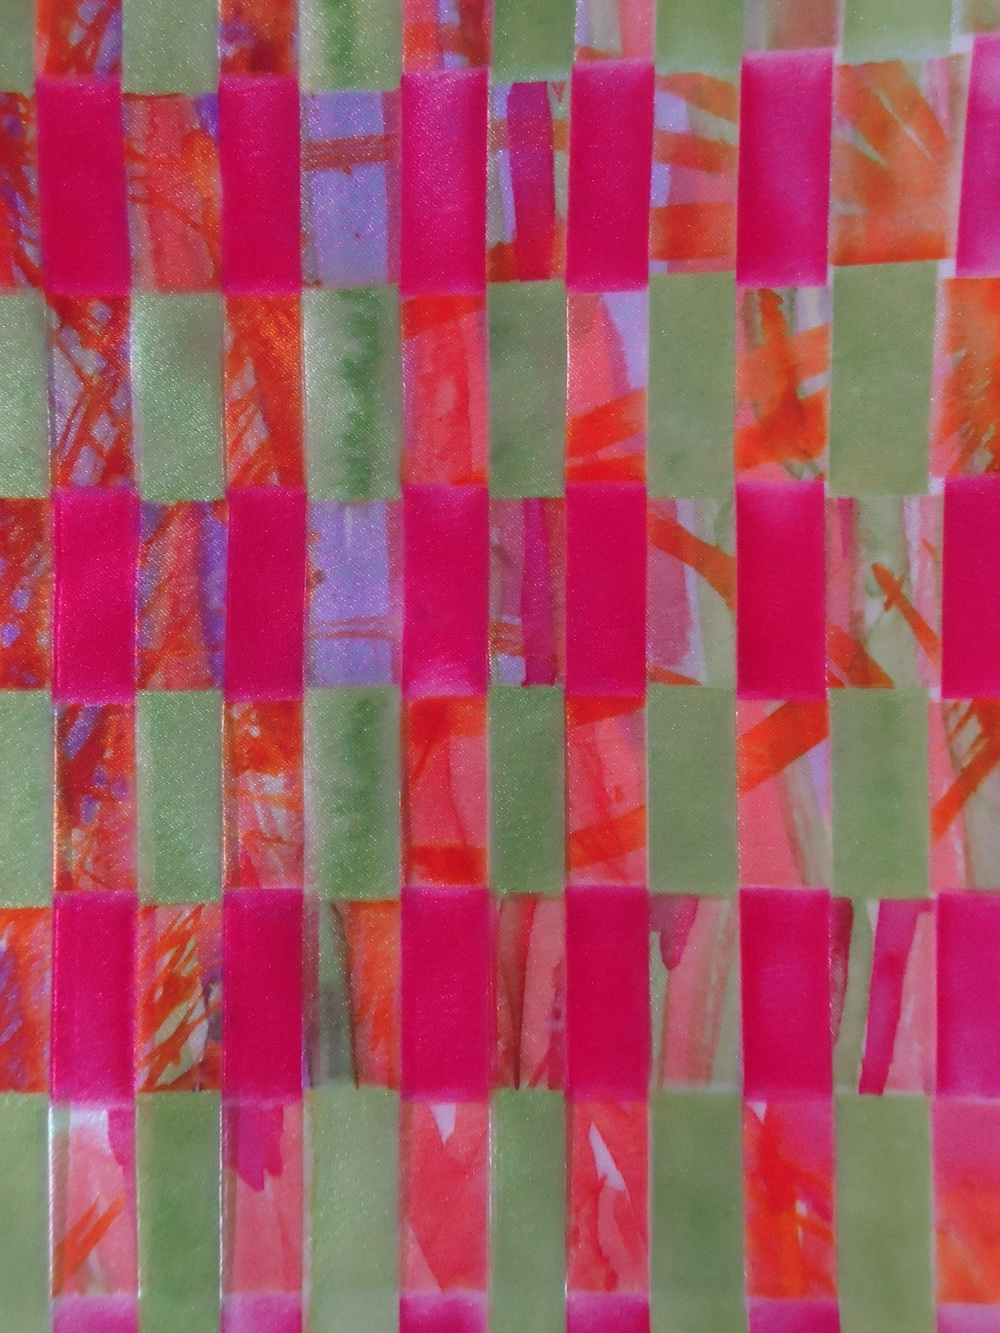 Paper weaving printed onto fabric